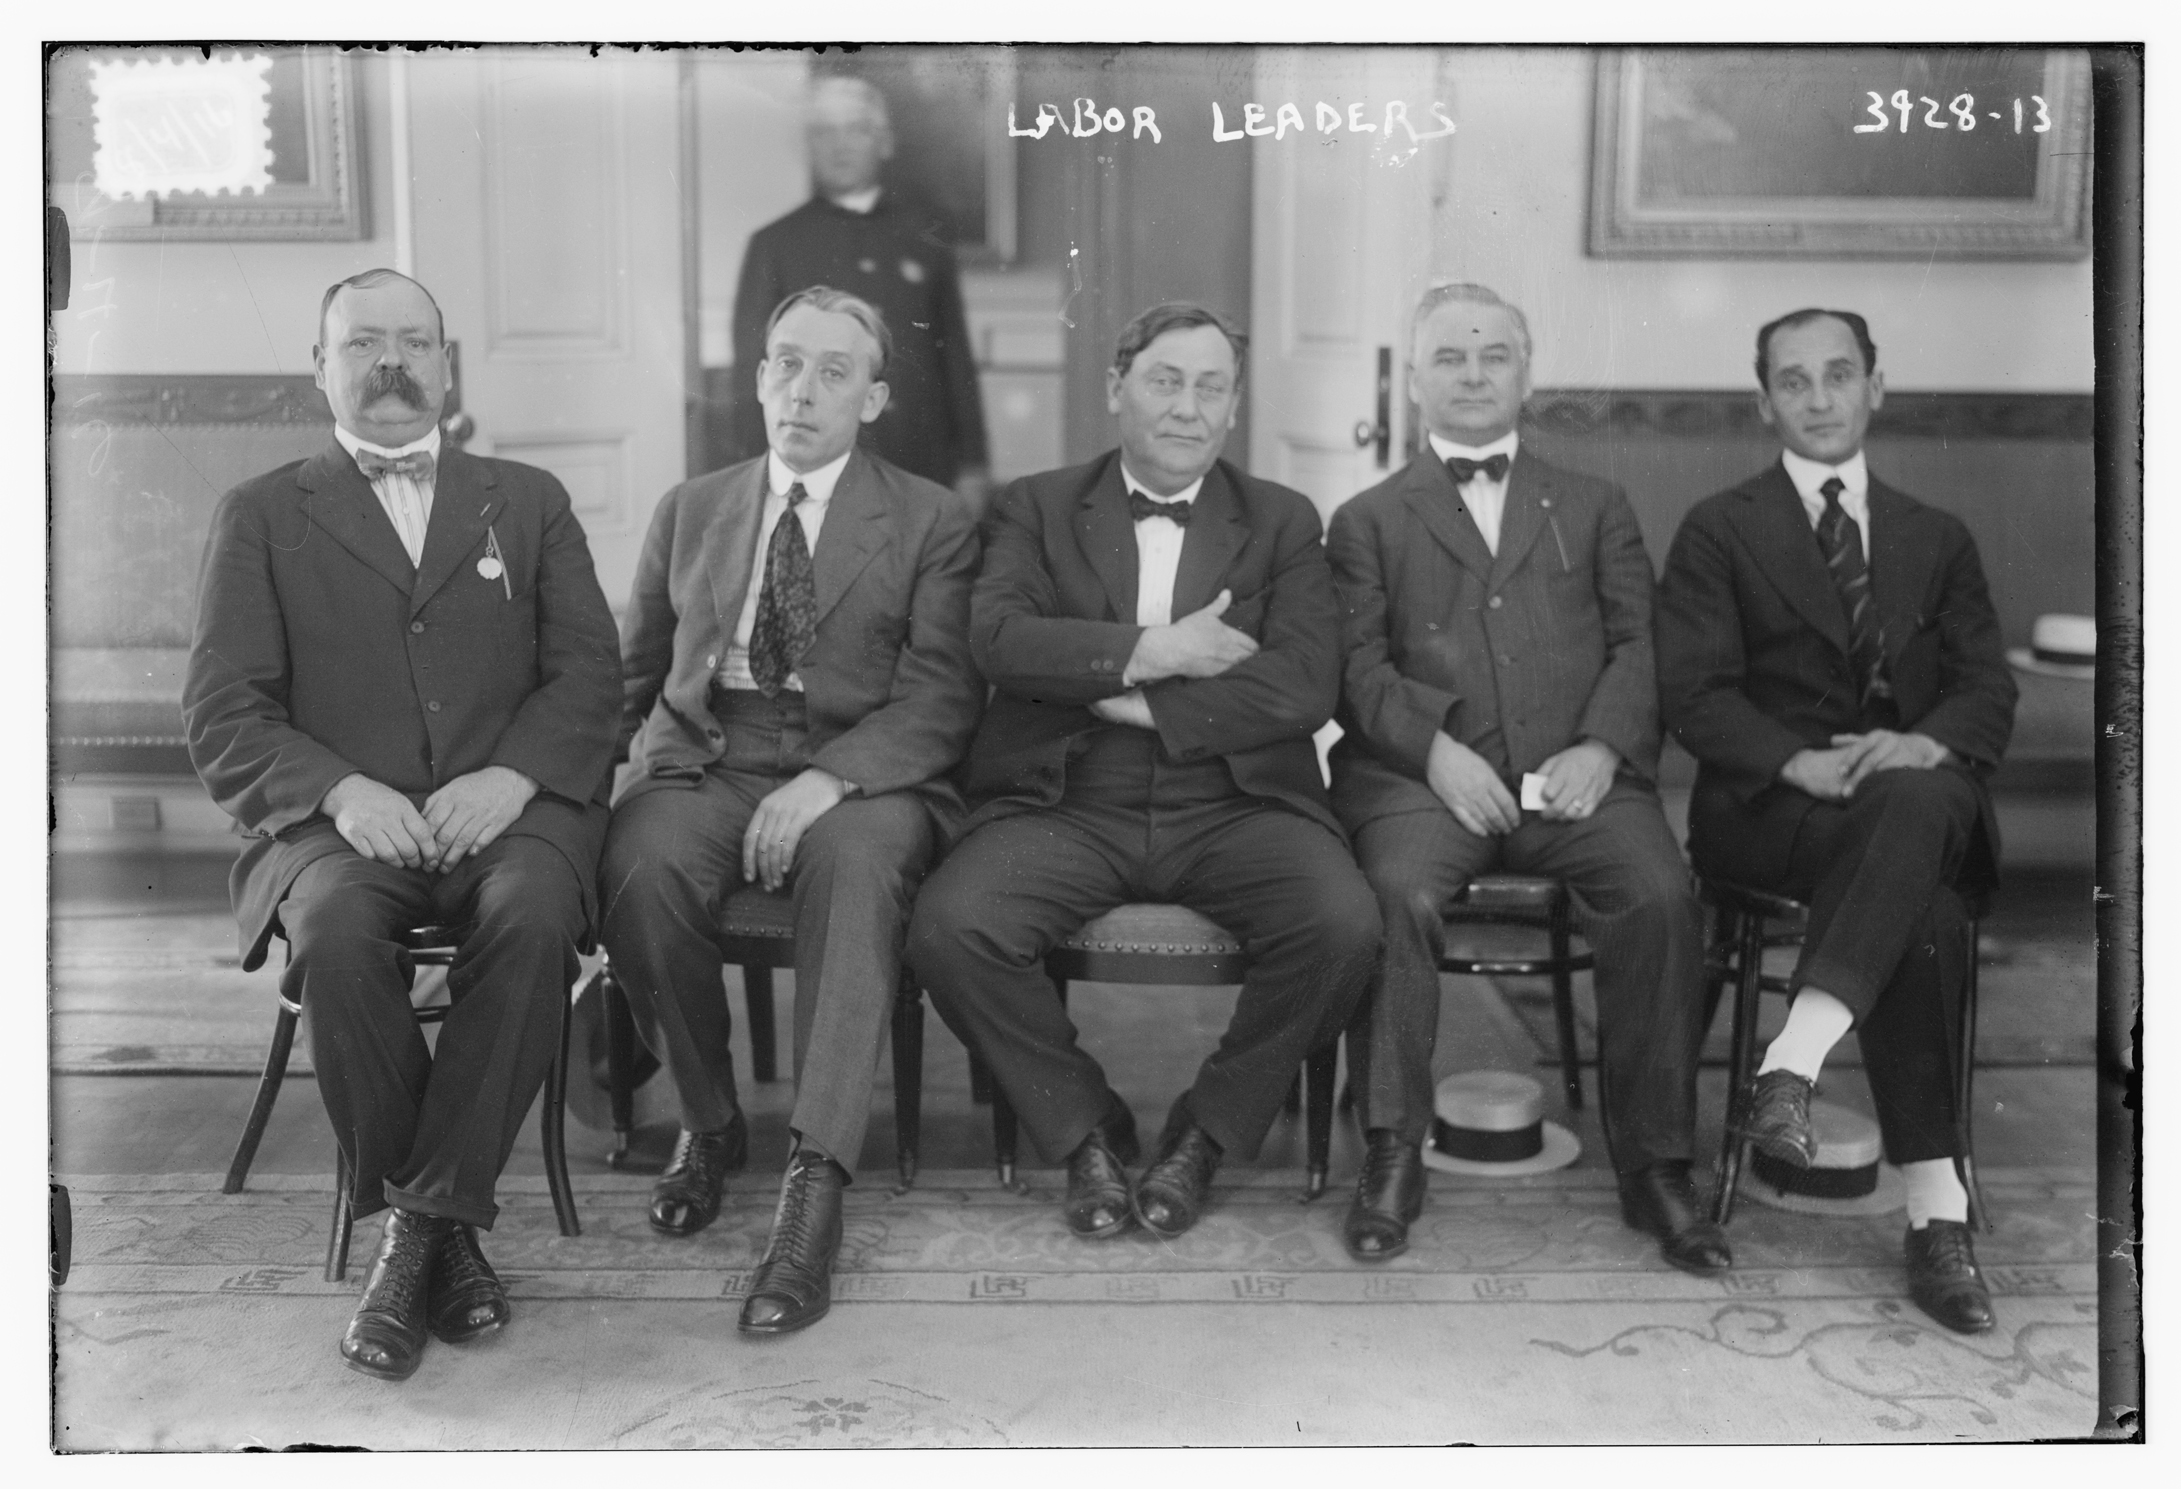 August 4, 1916: From left: Irish American  labor leaders Timothy Healy, William B.  Fitzgerald, William D. Mahon, Hugh Frayne (general  organizer in  New York for  the American  Federation of Labor), and Louis Fridiger. Probably taken during the streetcar strike in New York City, which took place in July and August of 1916. Fitzgerald, Mahon, and Fridiger  represented the Amalgamated  Association of Street Railway  Employees of  America.